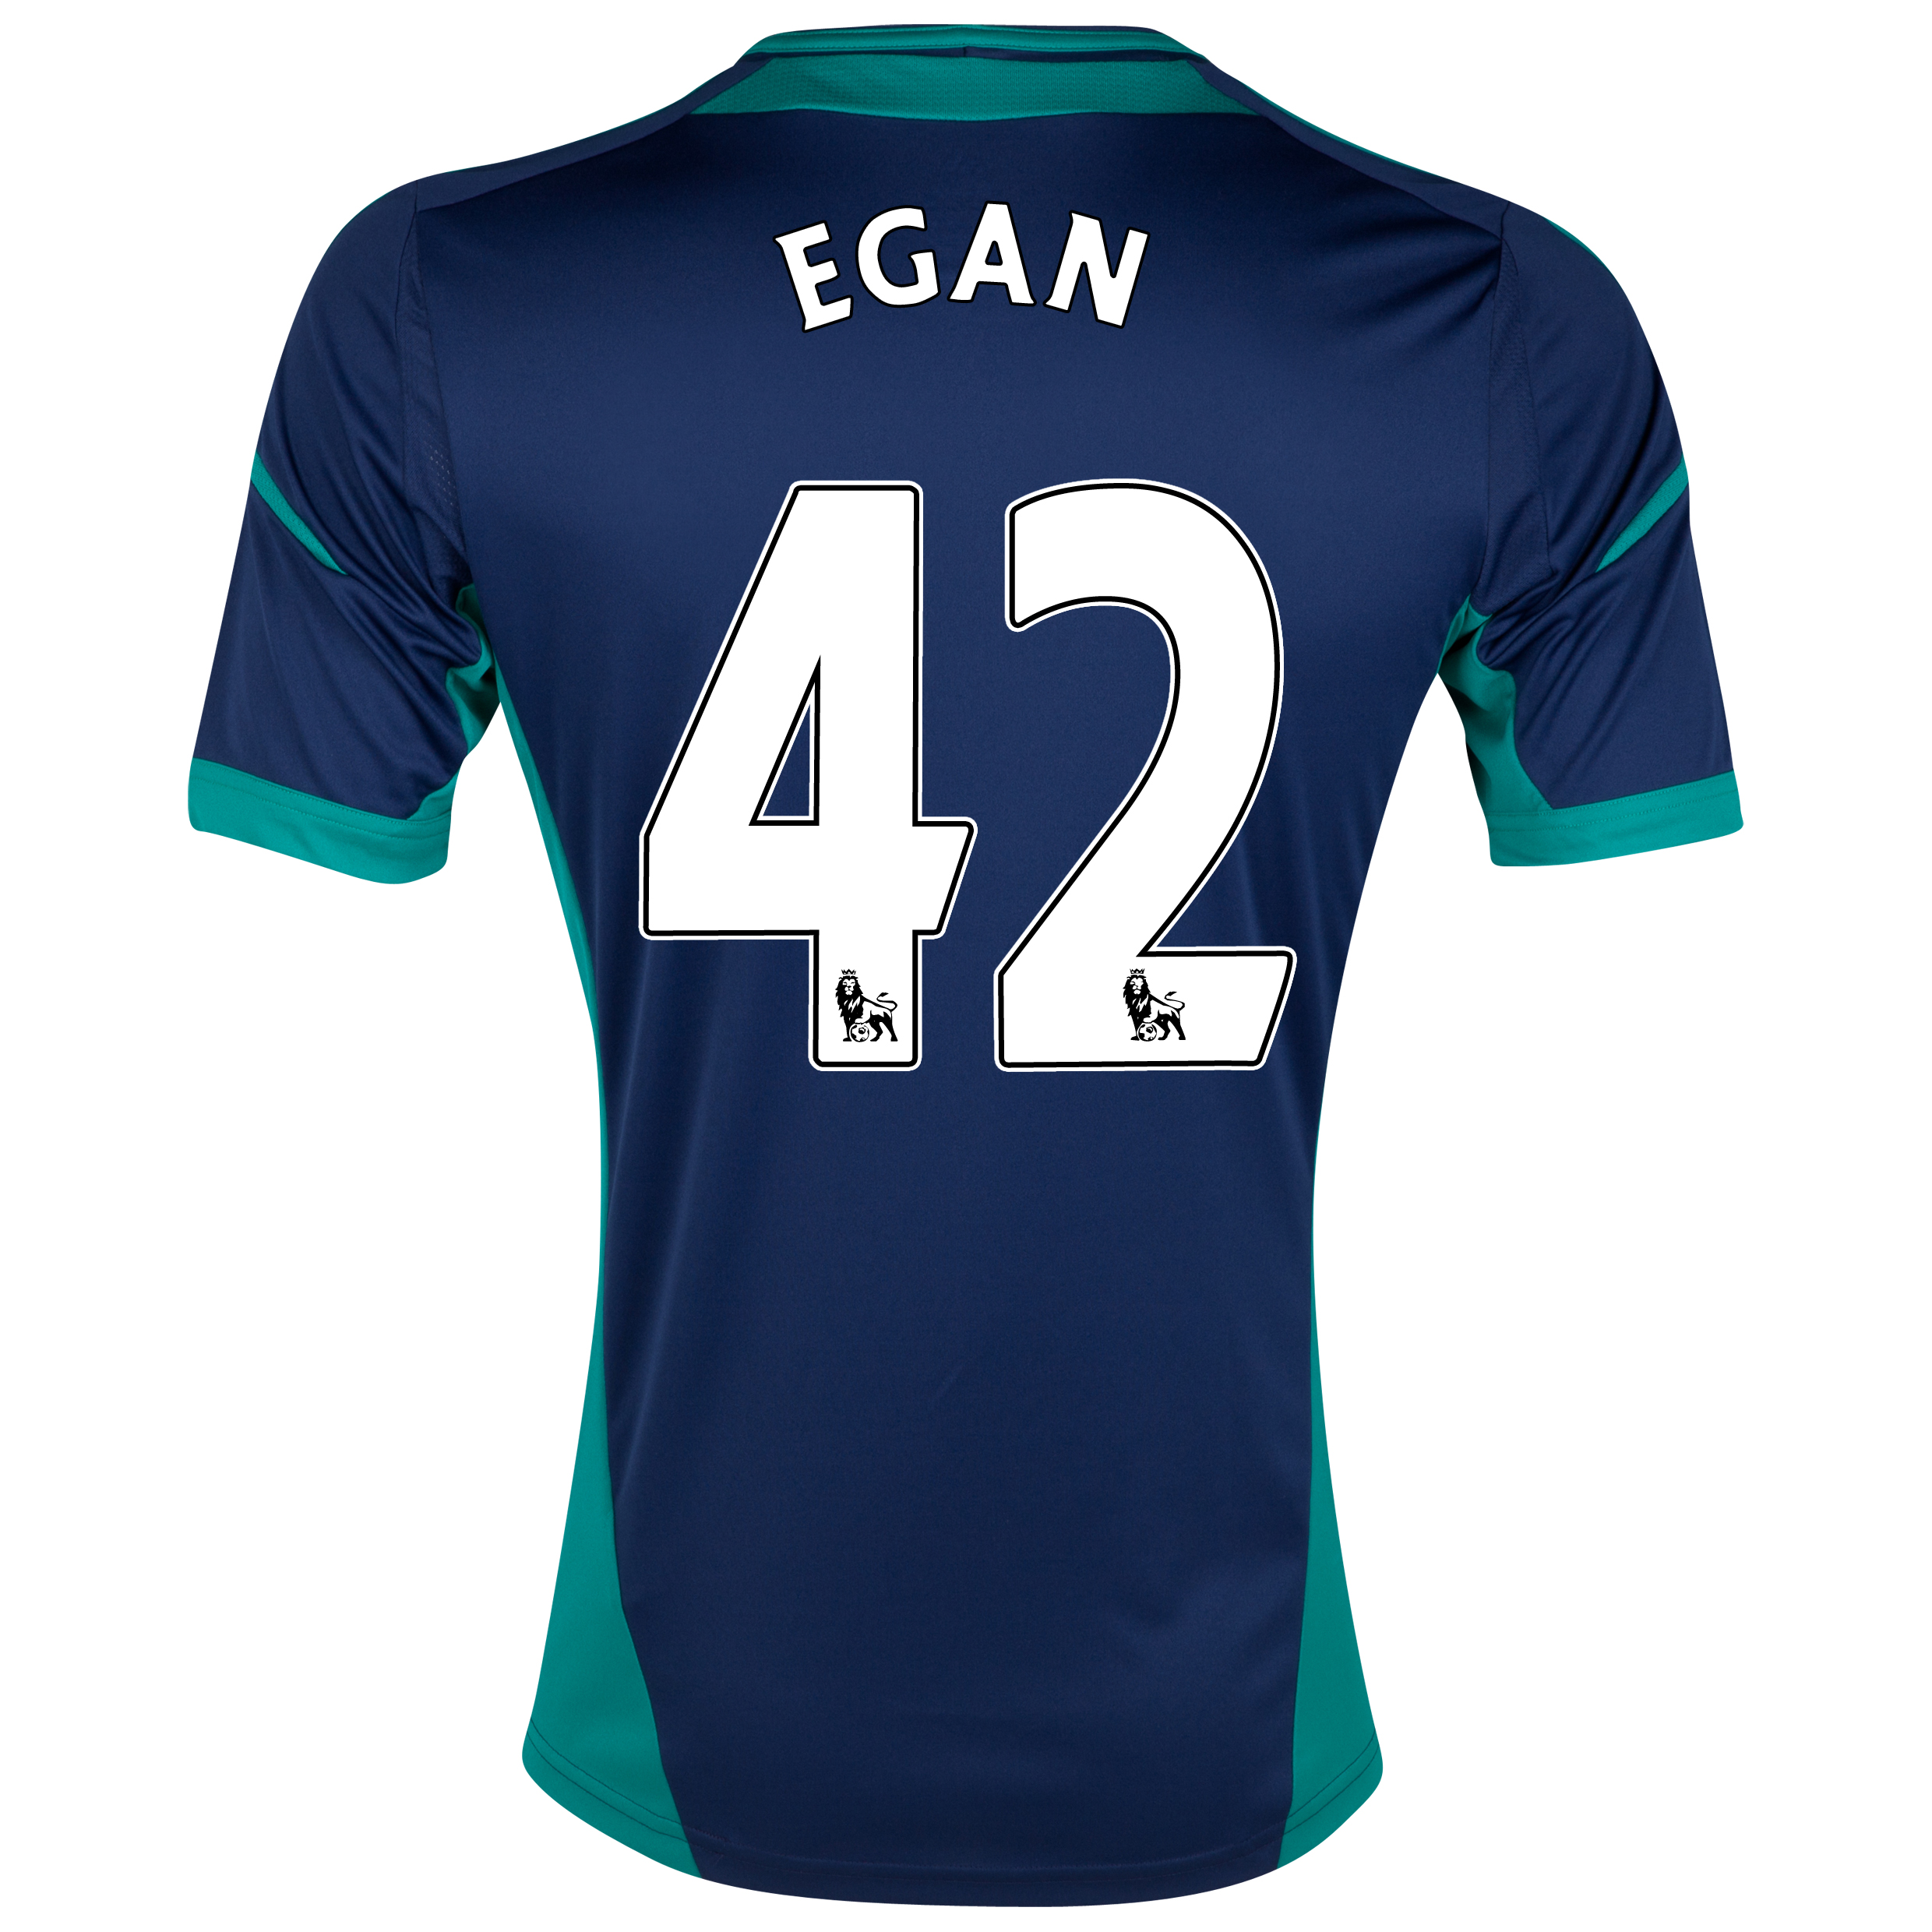 Sunderland Away Shirt 2012/13 with Egan 42 printing